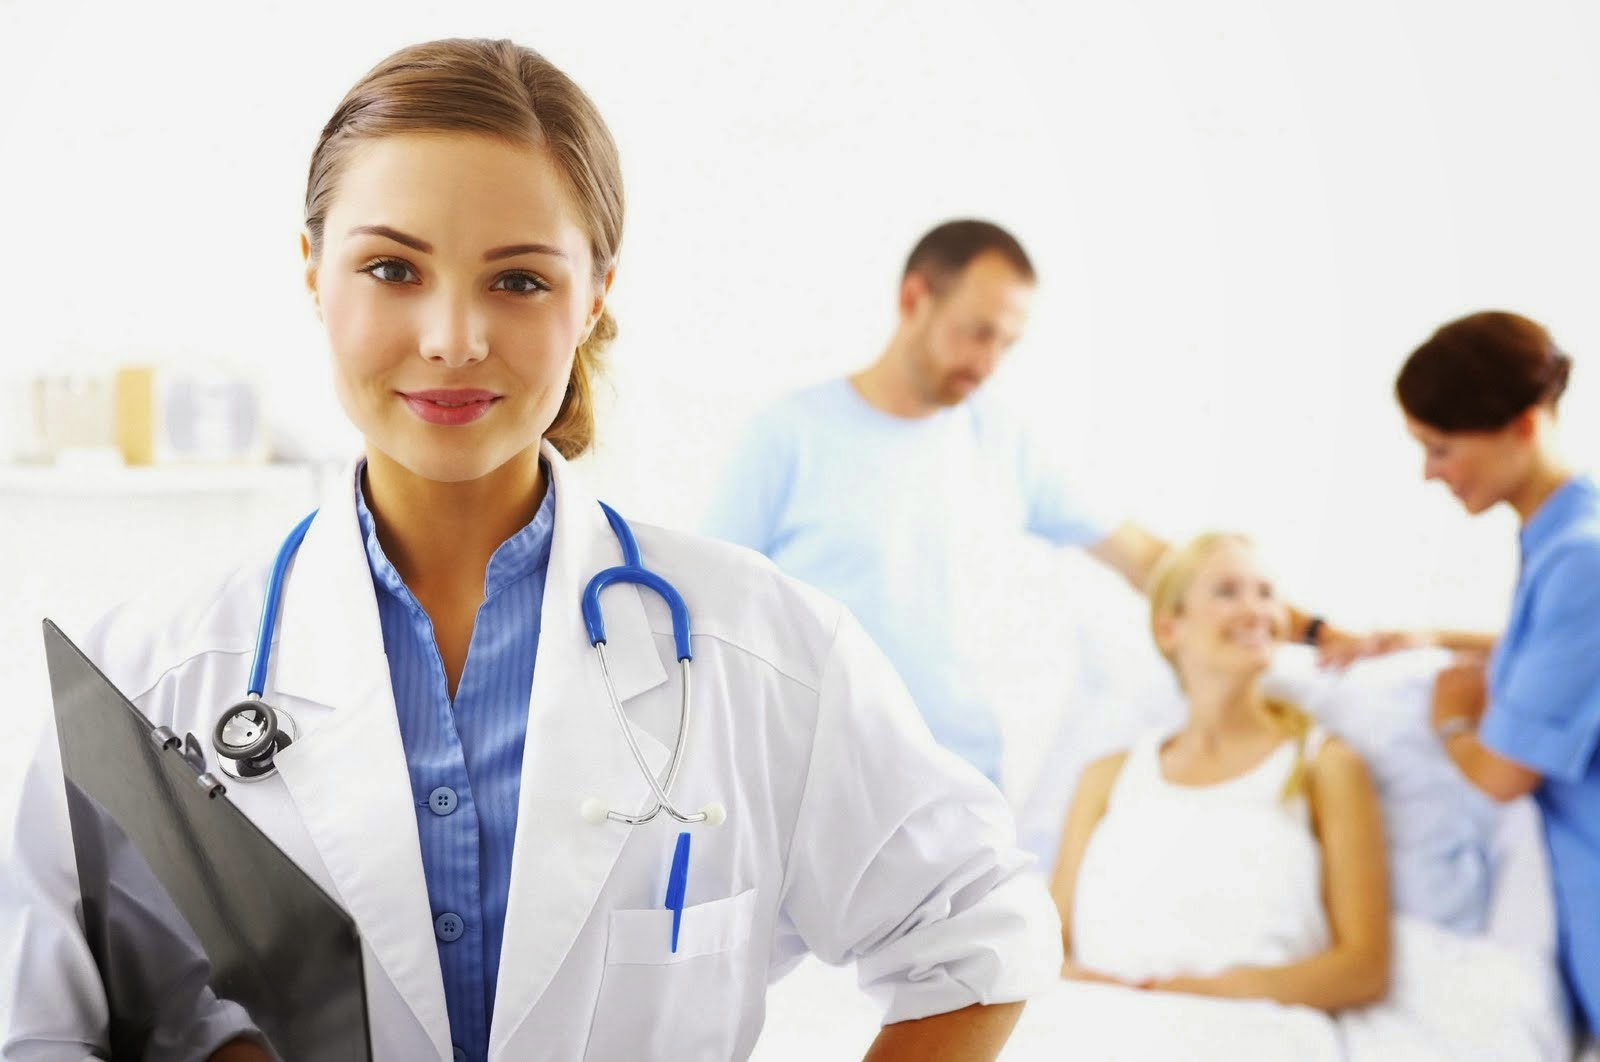 Nurse Required in UAE www.placementoverseas.com